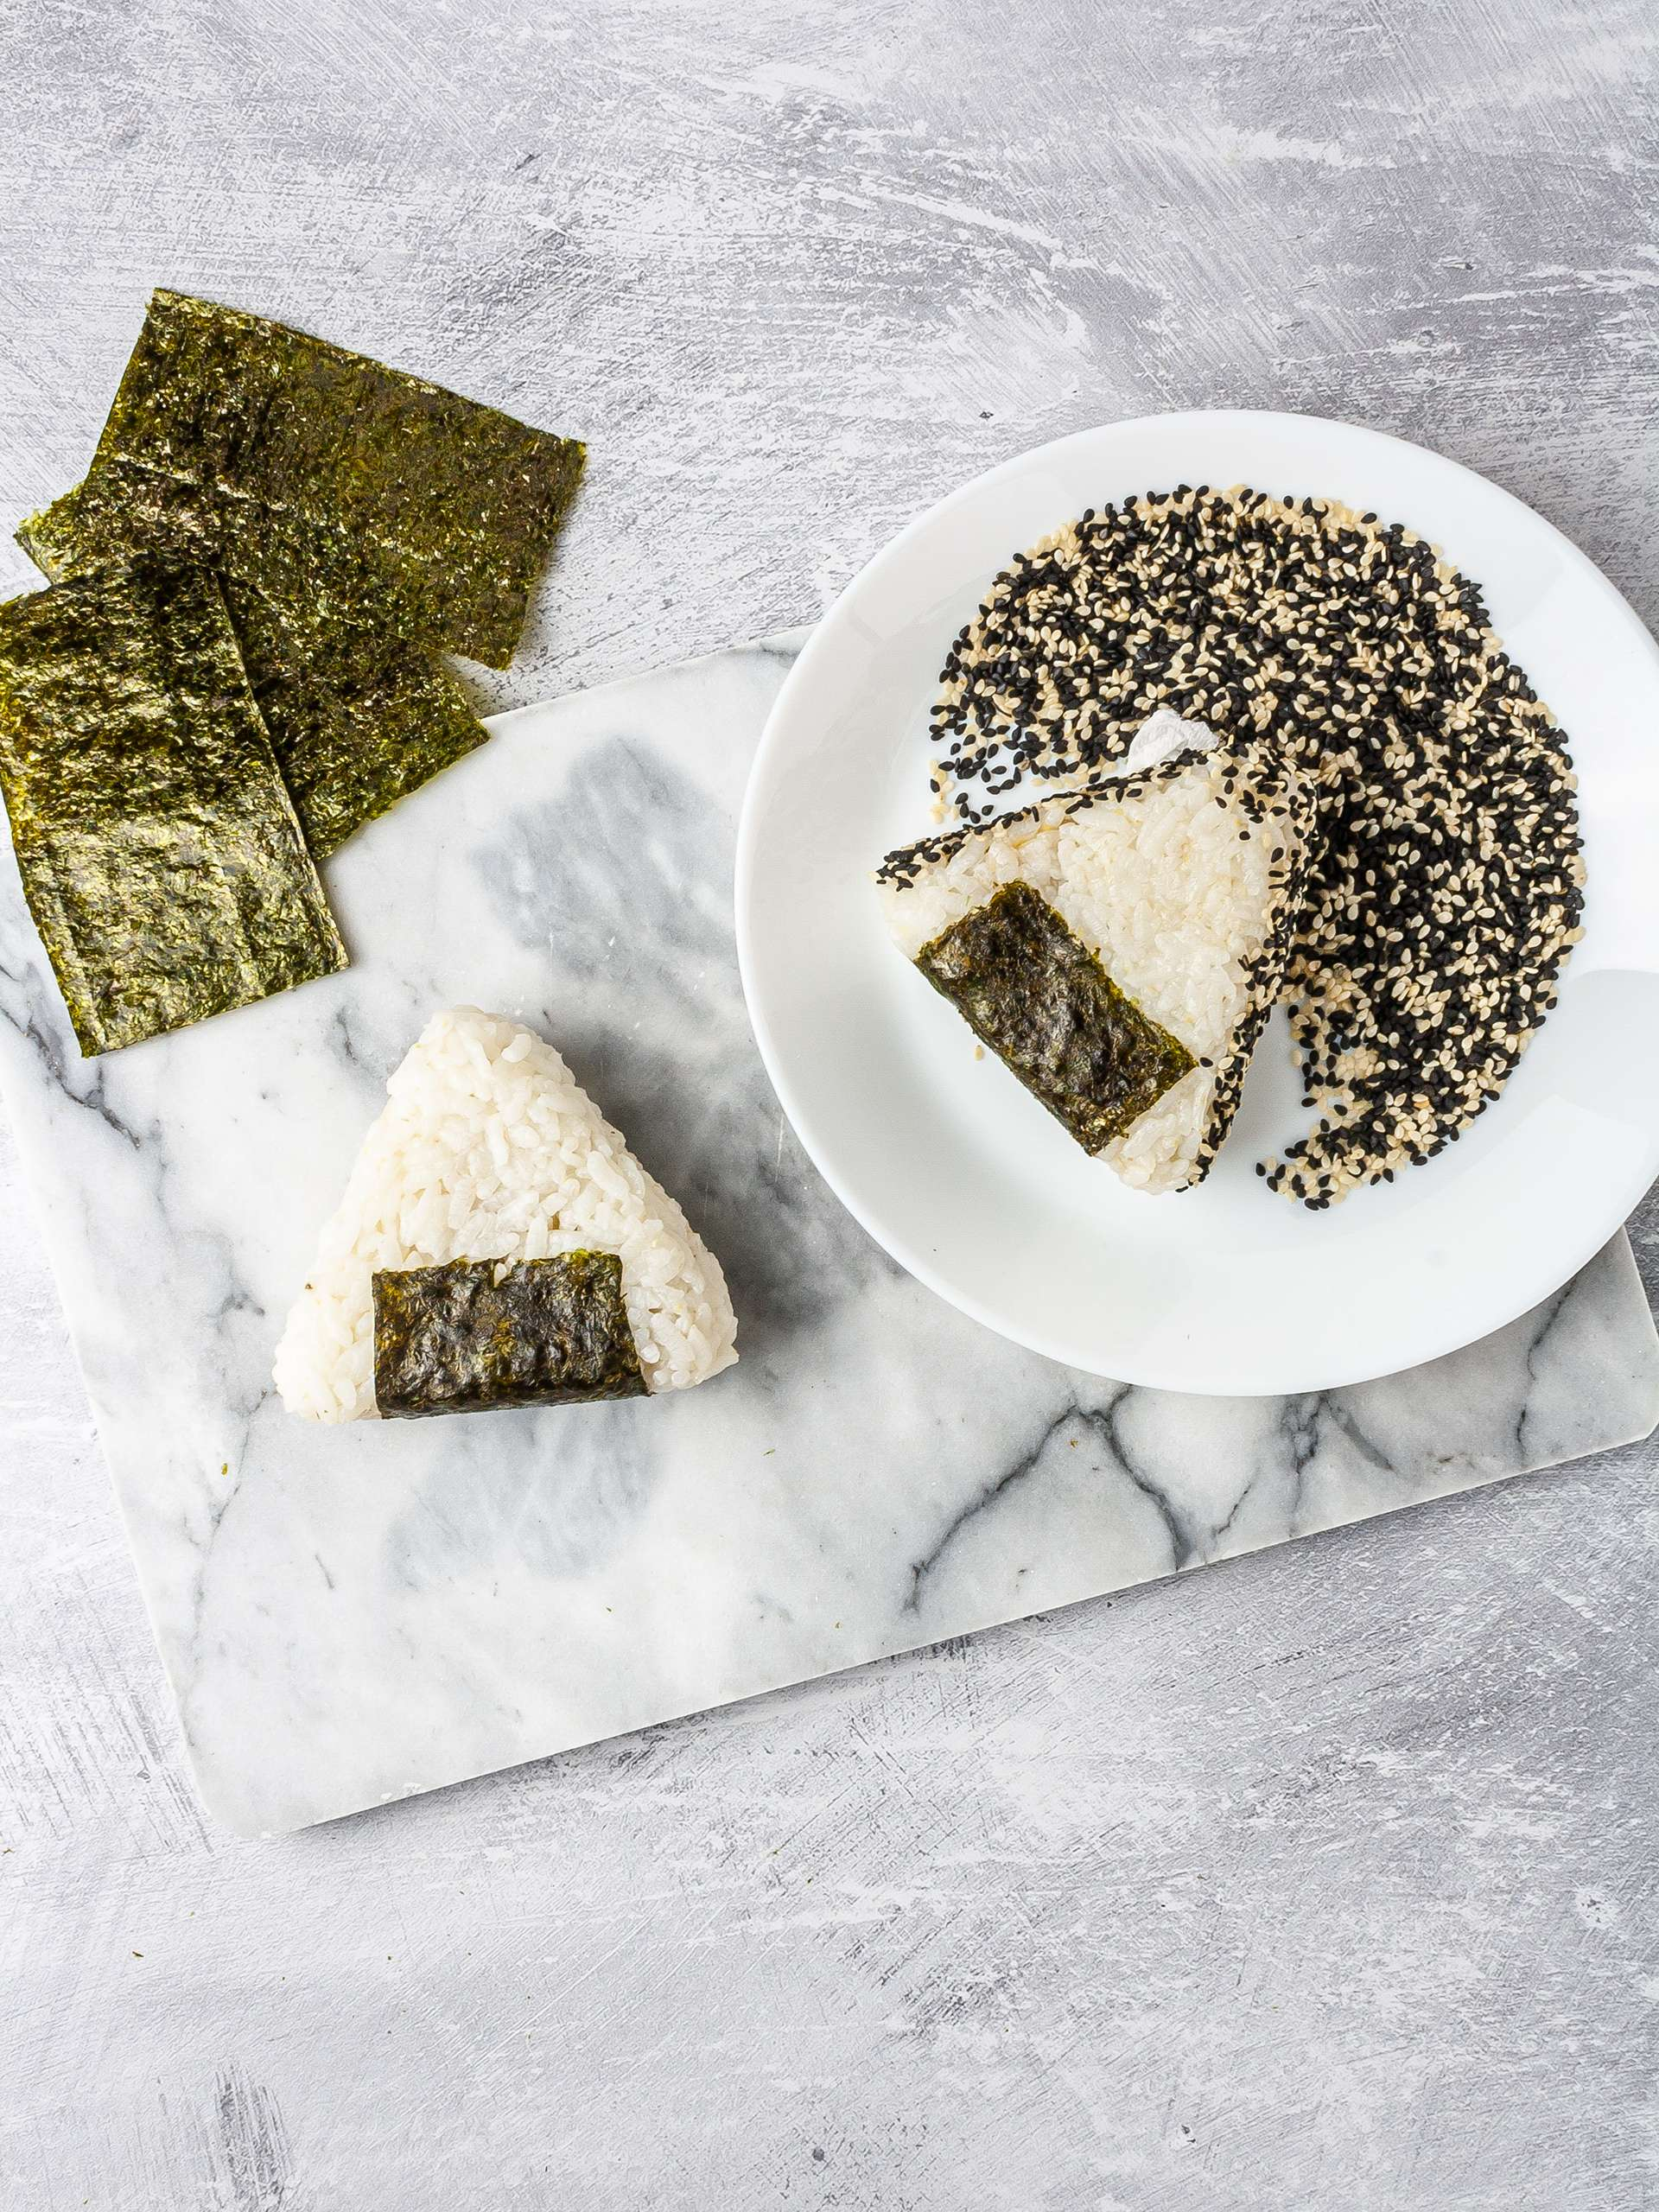 Vegan onigiri wrapped in nori sheet and coated in sesame seeds.